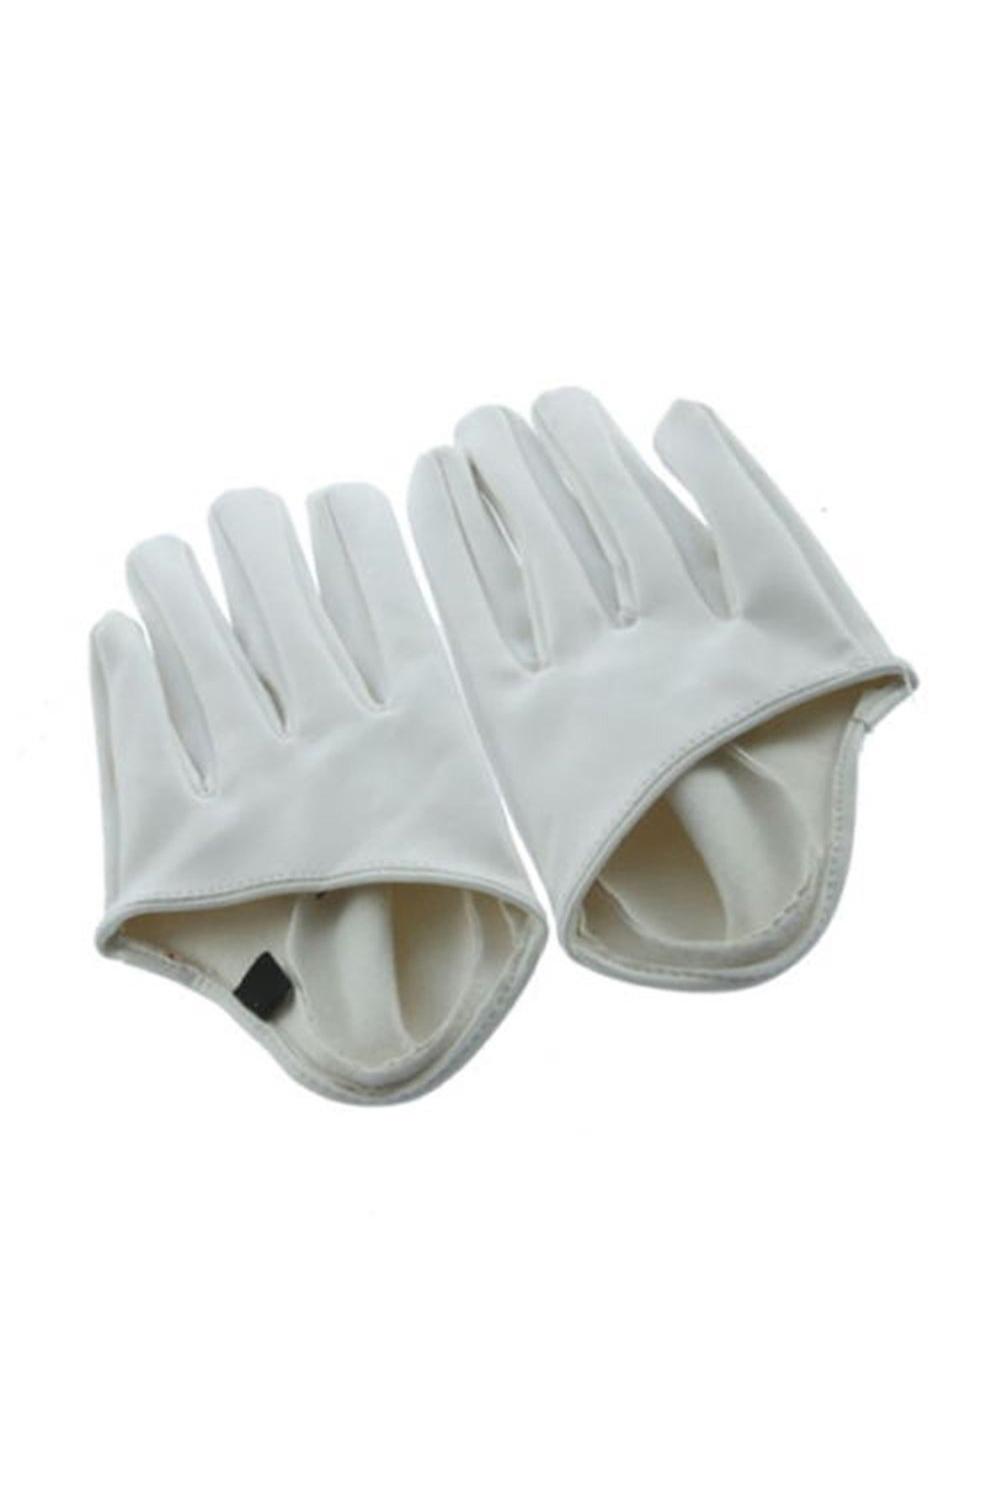 Women's Faux Leather Five Finger Half Palm Gloves White(China (Mainland))